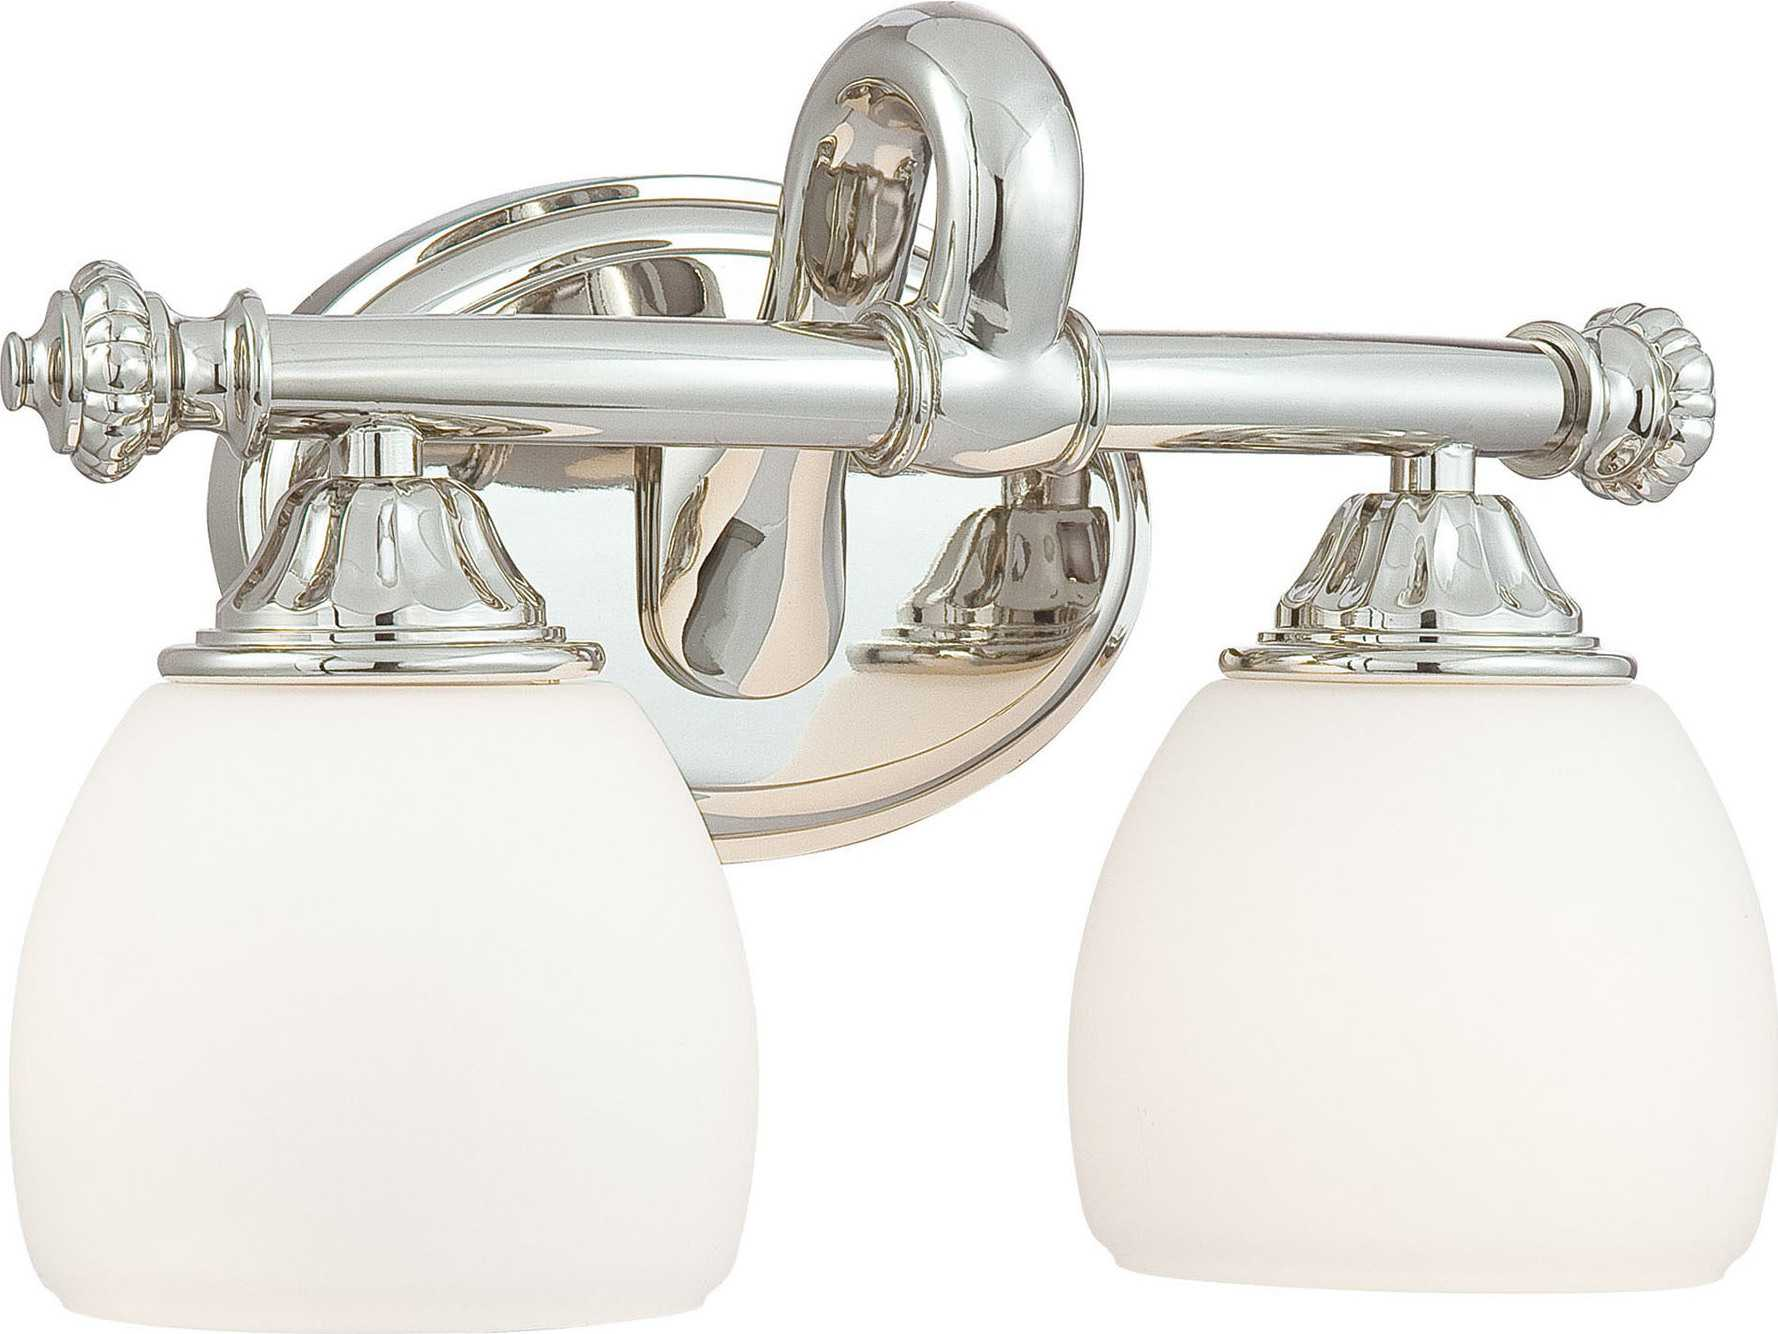 Metropolitan Lighting Polished Nickel Two-Lights Vanity Light N2822-613